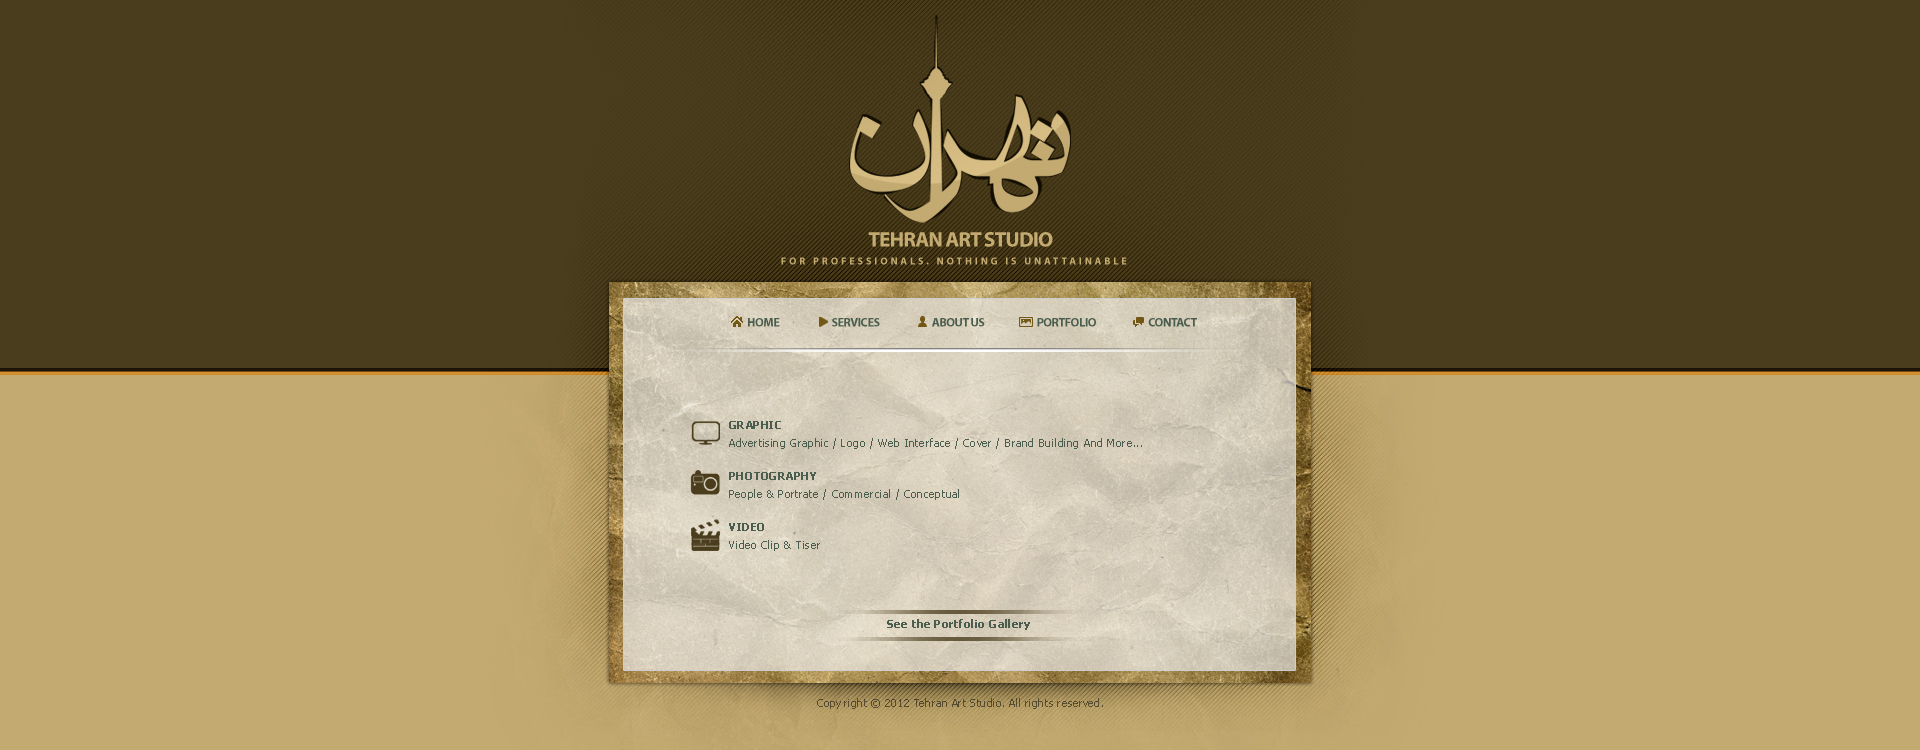 Tehran Art Studio Website by Mojtaba-Sharif